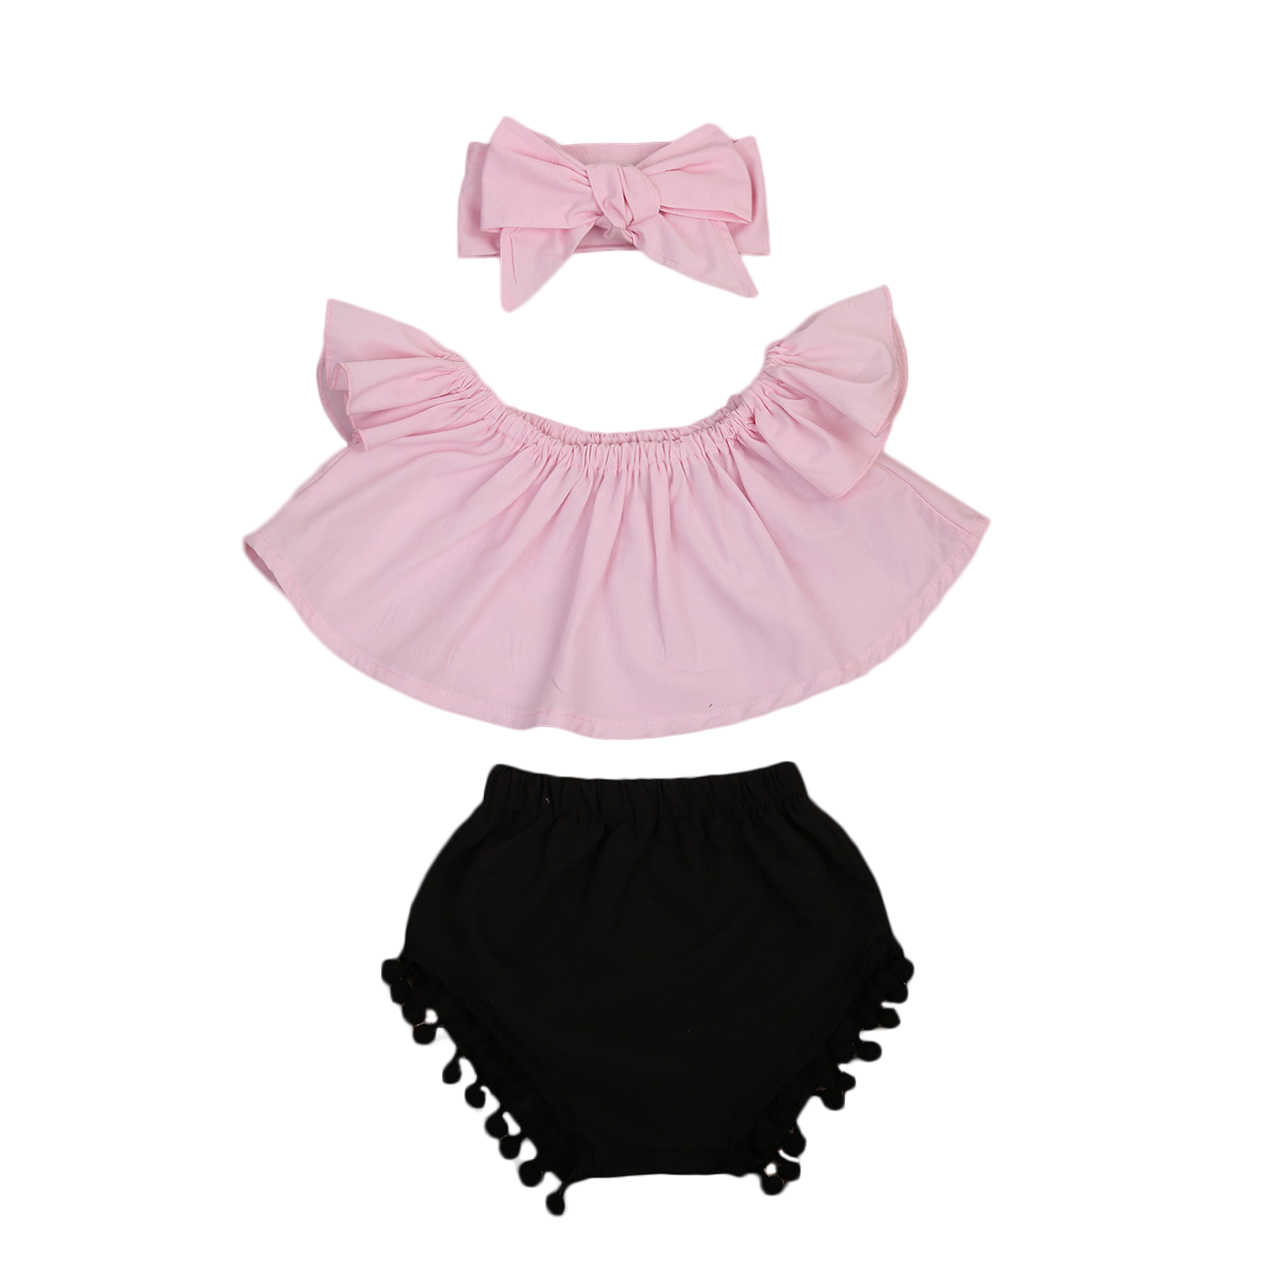 27211acd1bf8 Toddler Baby Girl Clothes Set Off Shoulder Top Crop T-Shirt Shorts Pants  Small Ball